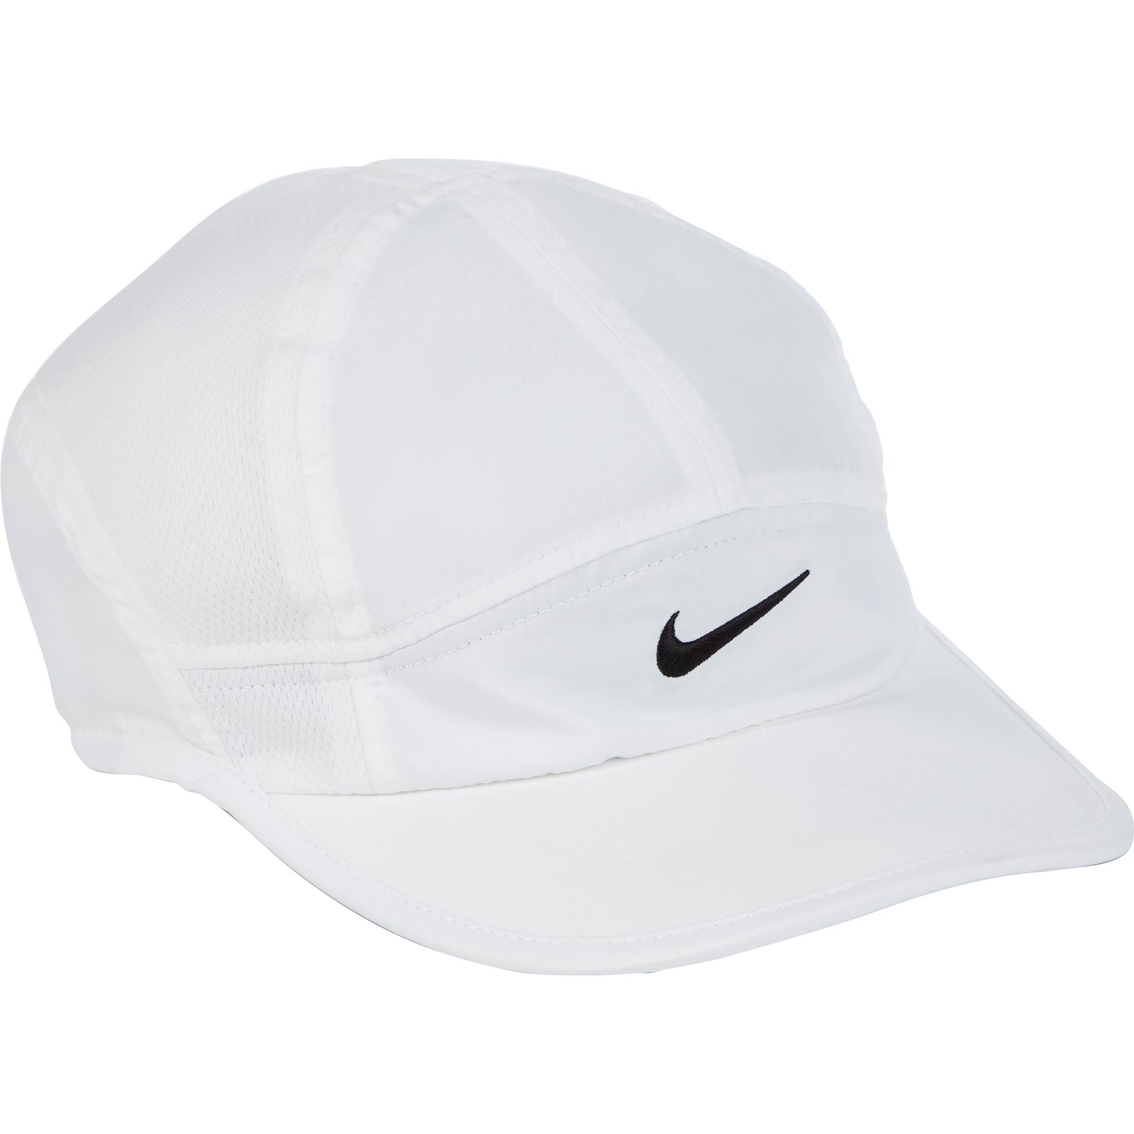 5871b11e Nike Feather Light 2.0 Cap | Hats & Visors | Handbags & Accessories ...